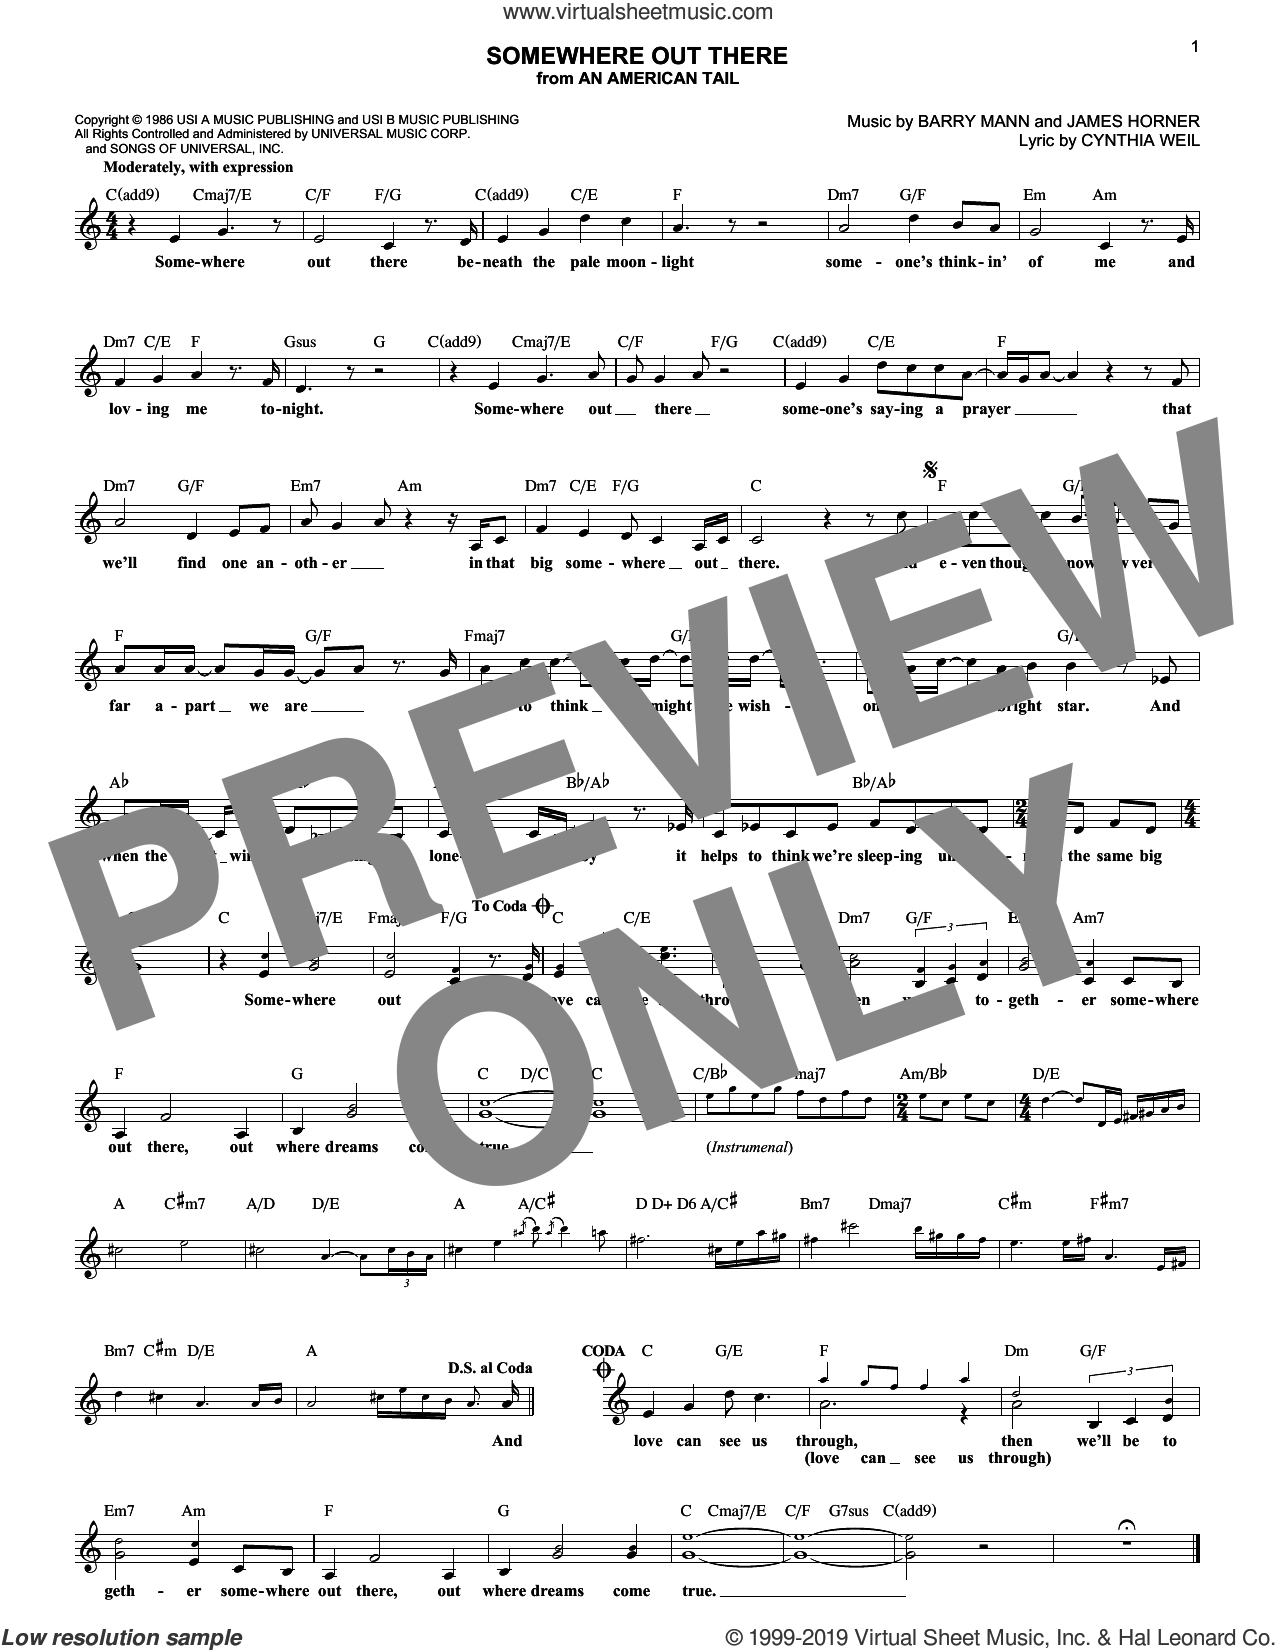 Somewhere Out There sheet music for voice and other instruments (fake book) by Linda Ronstadt & James Ingram, Barry Mann, Cynthia Weil and James Horner, intermediate skill level